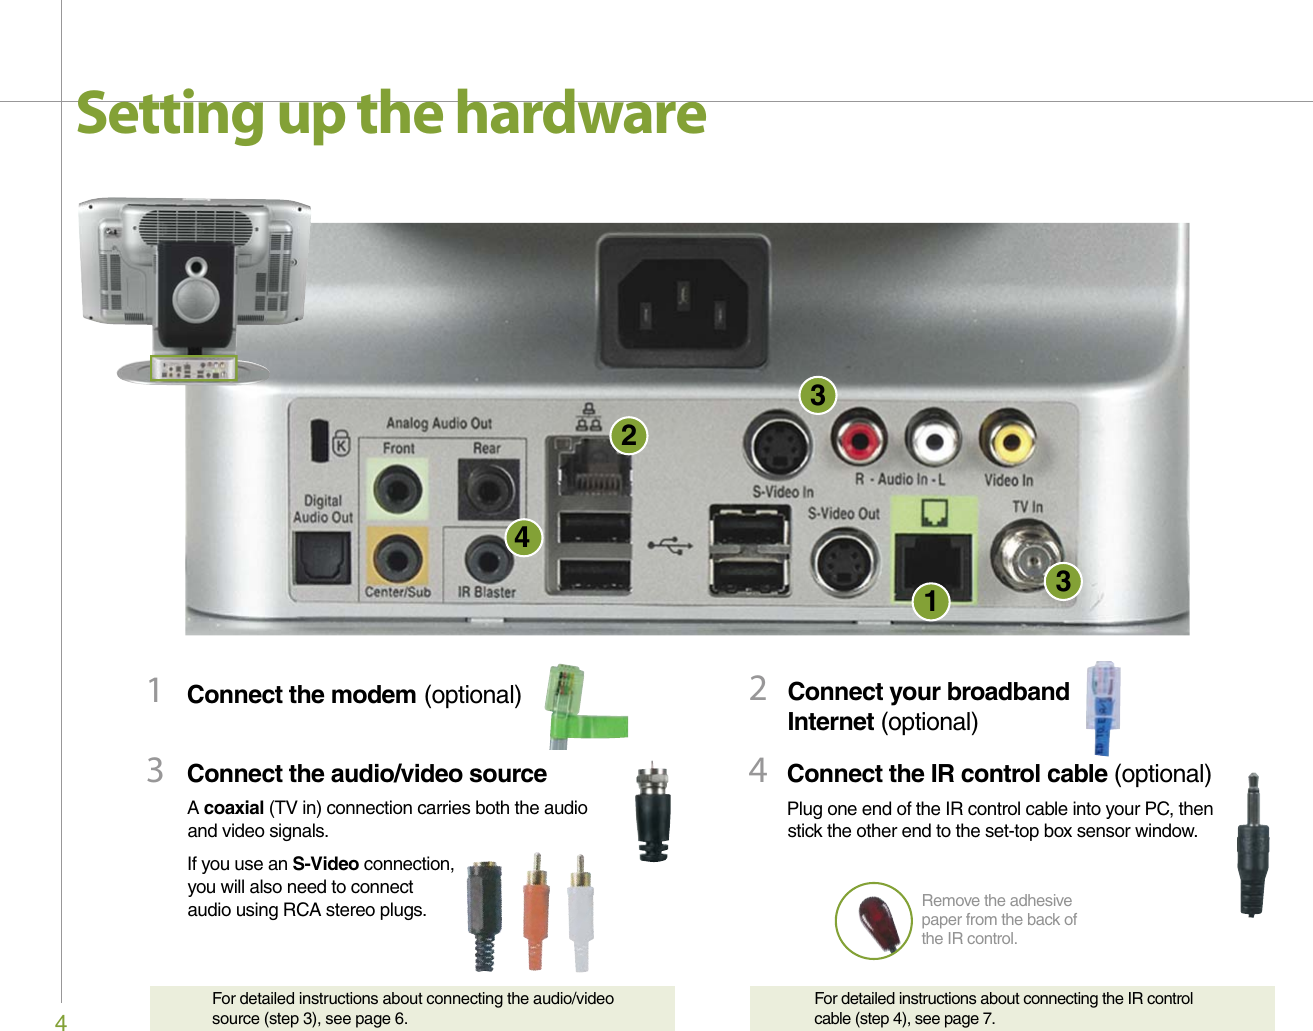 Gateway 610 Users Manual Media Center PC User's Guide